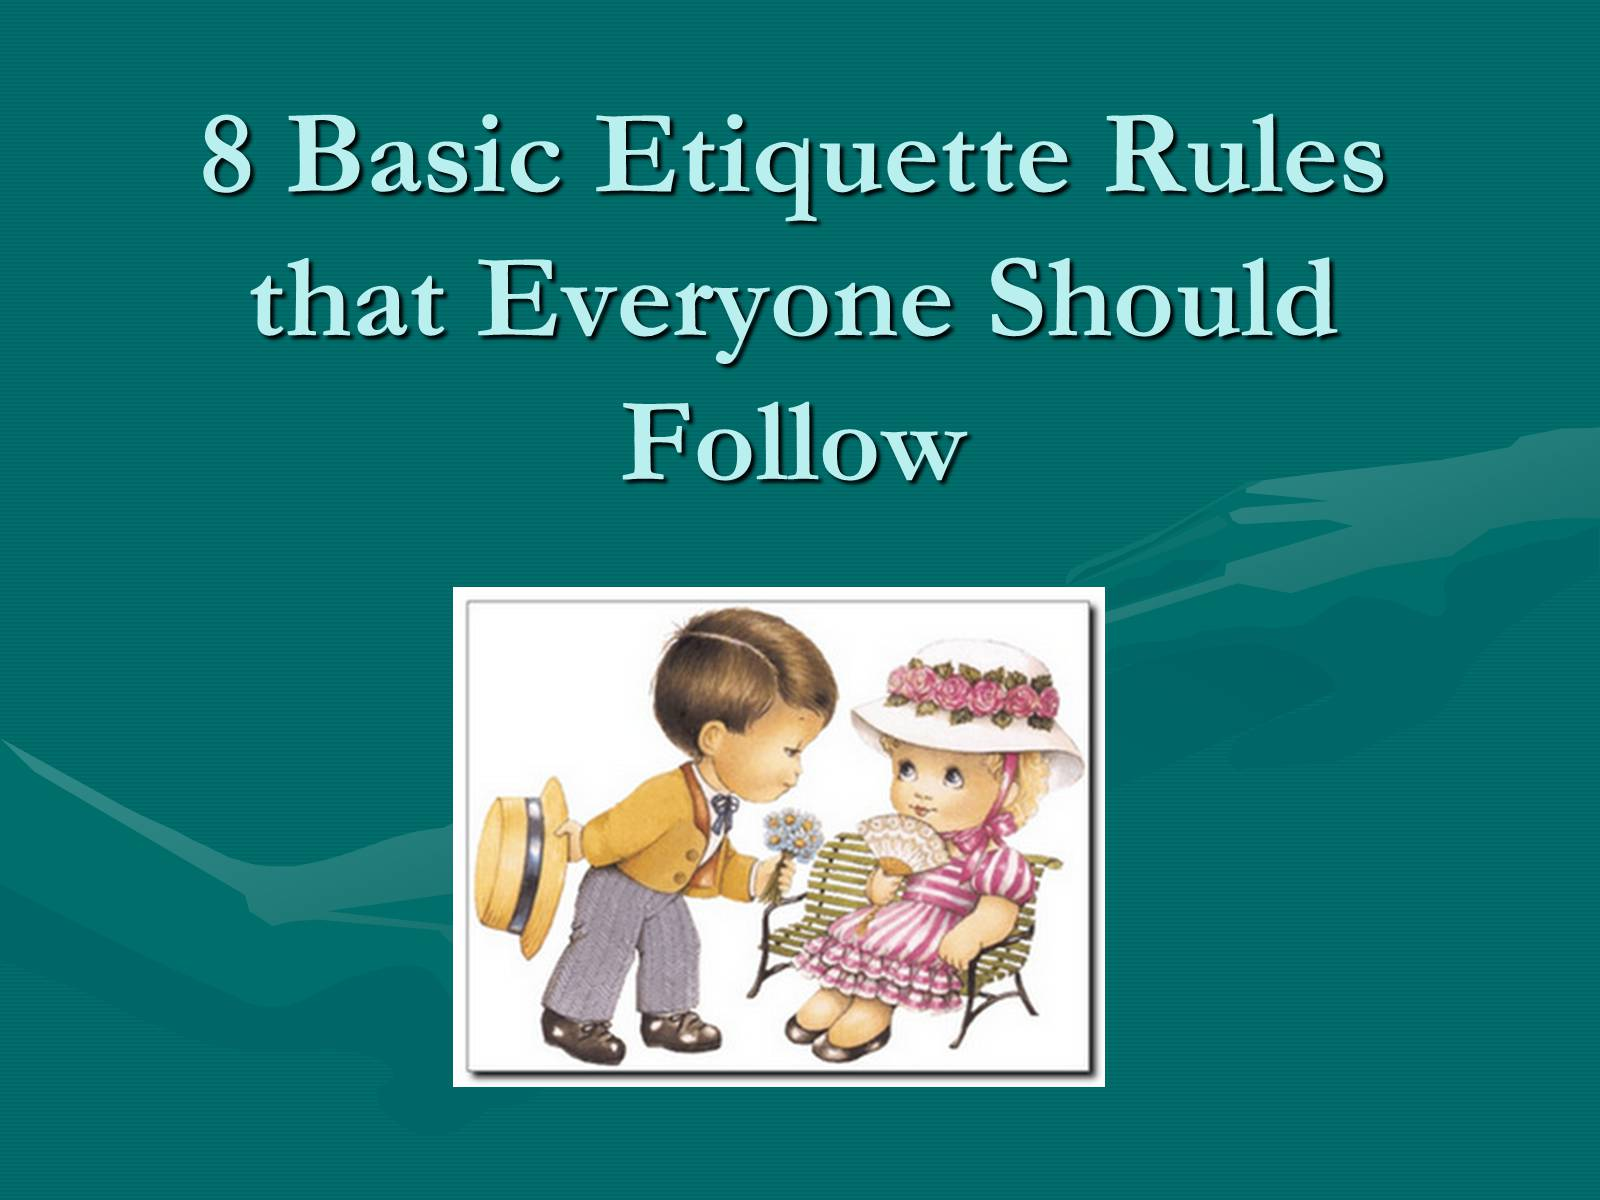 Презентація на тему «8 Basic Etiquette Rules that Everyone Should Follow» - Слайд #1